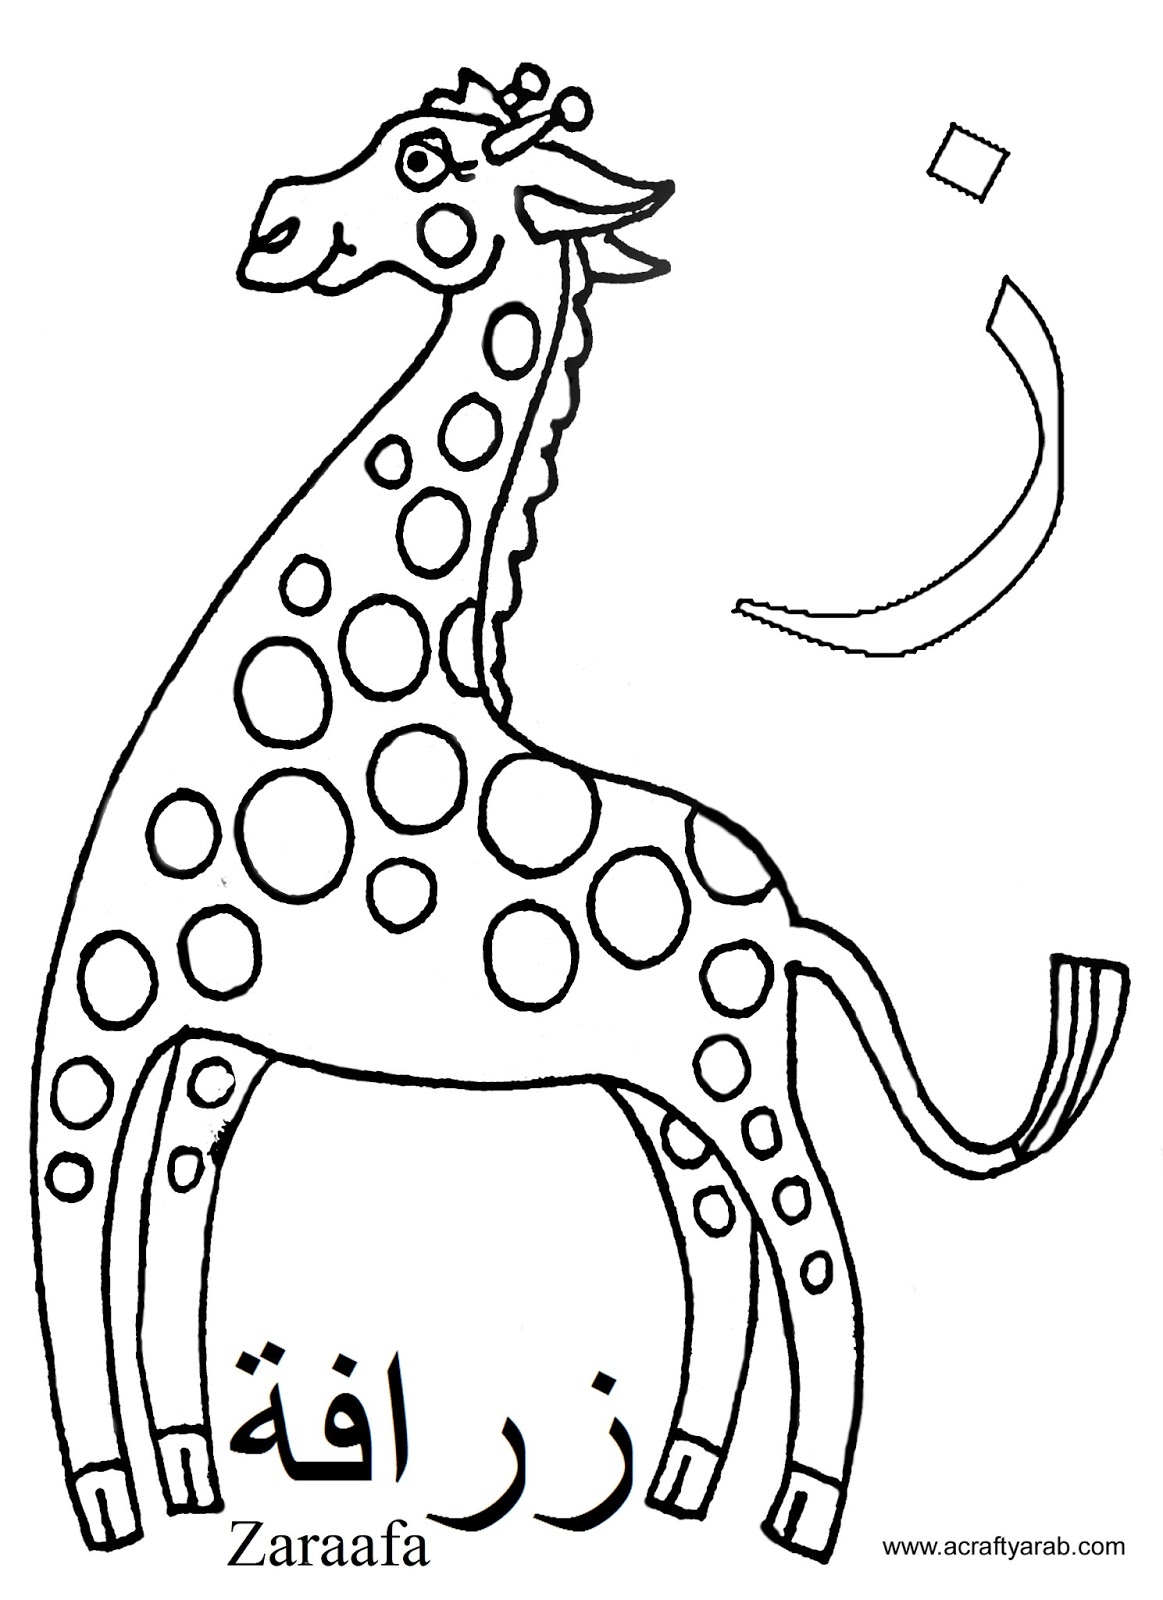 arabic alphabet coloring pages printable - I Colouring Pages